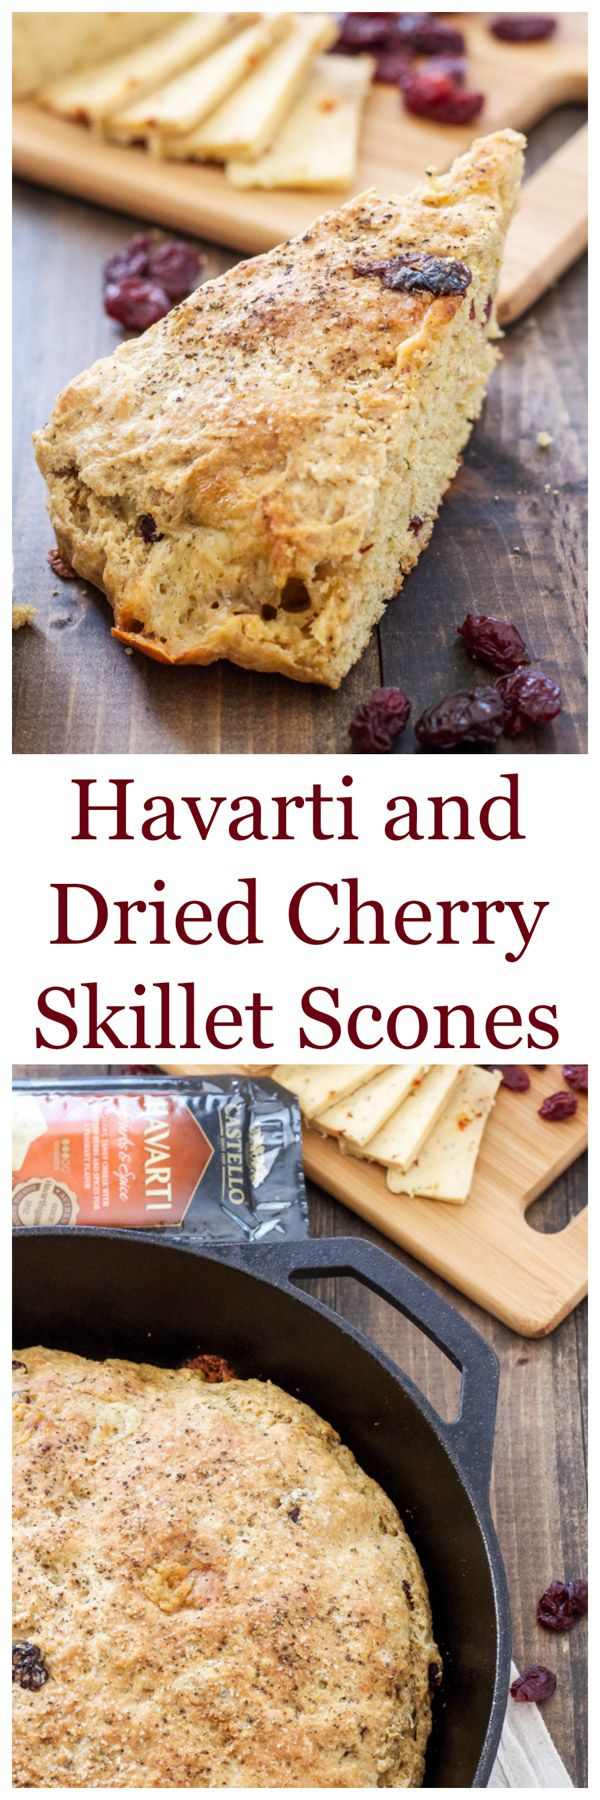 Havarti and Dried Cherry Skillet Scones | A savory and sweet scone ...